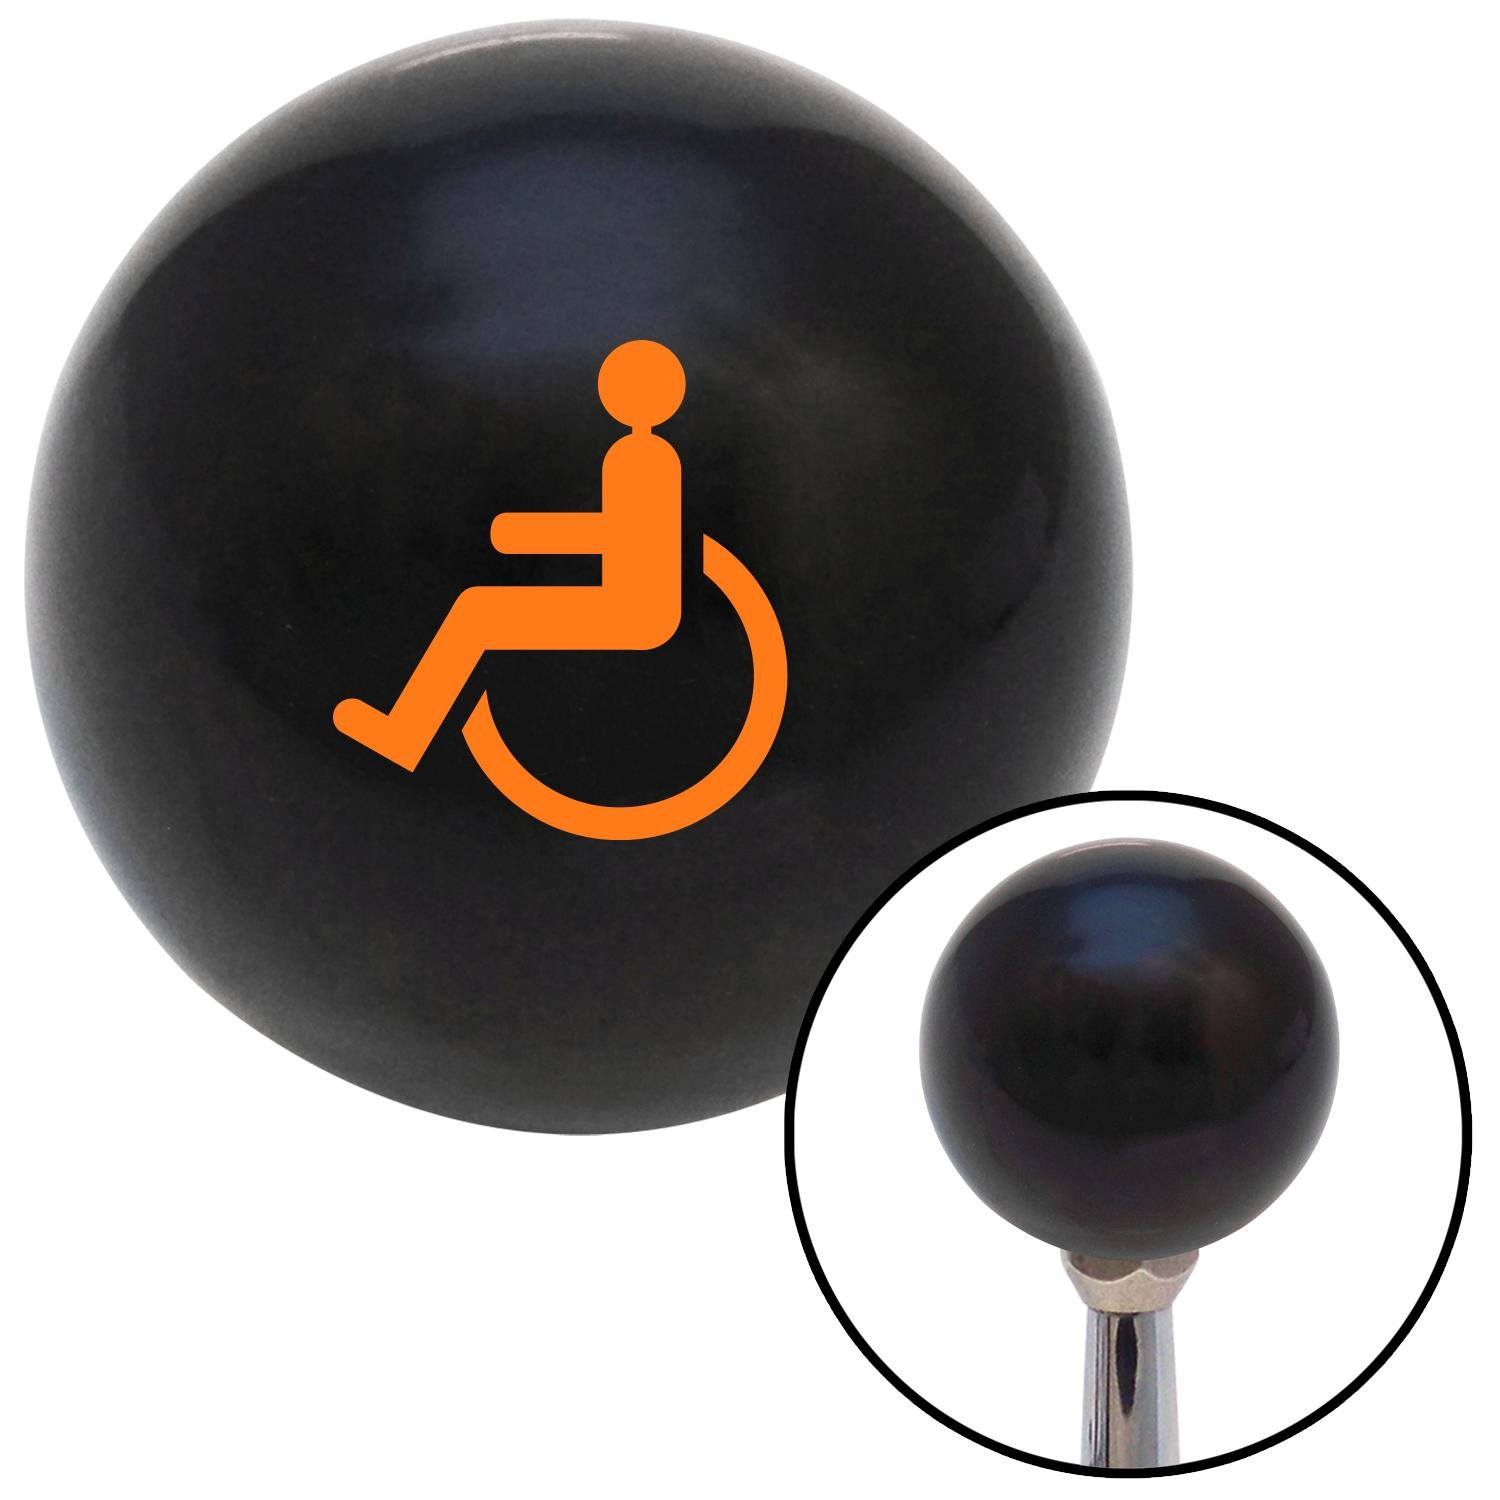 American Shifter 110313 Black Shift Knob with M16 x 1.5 Insert Orange Wheelchair